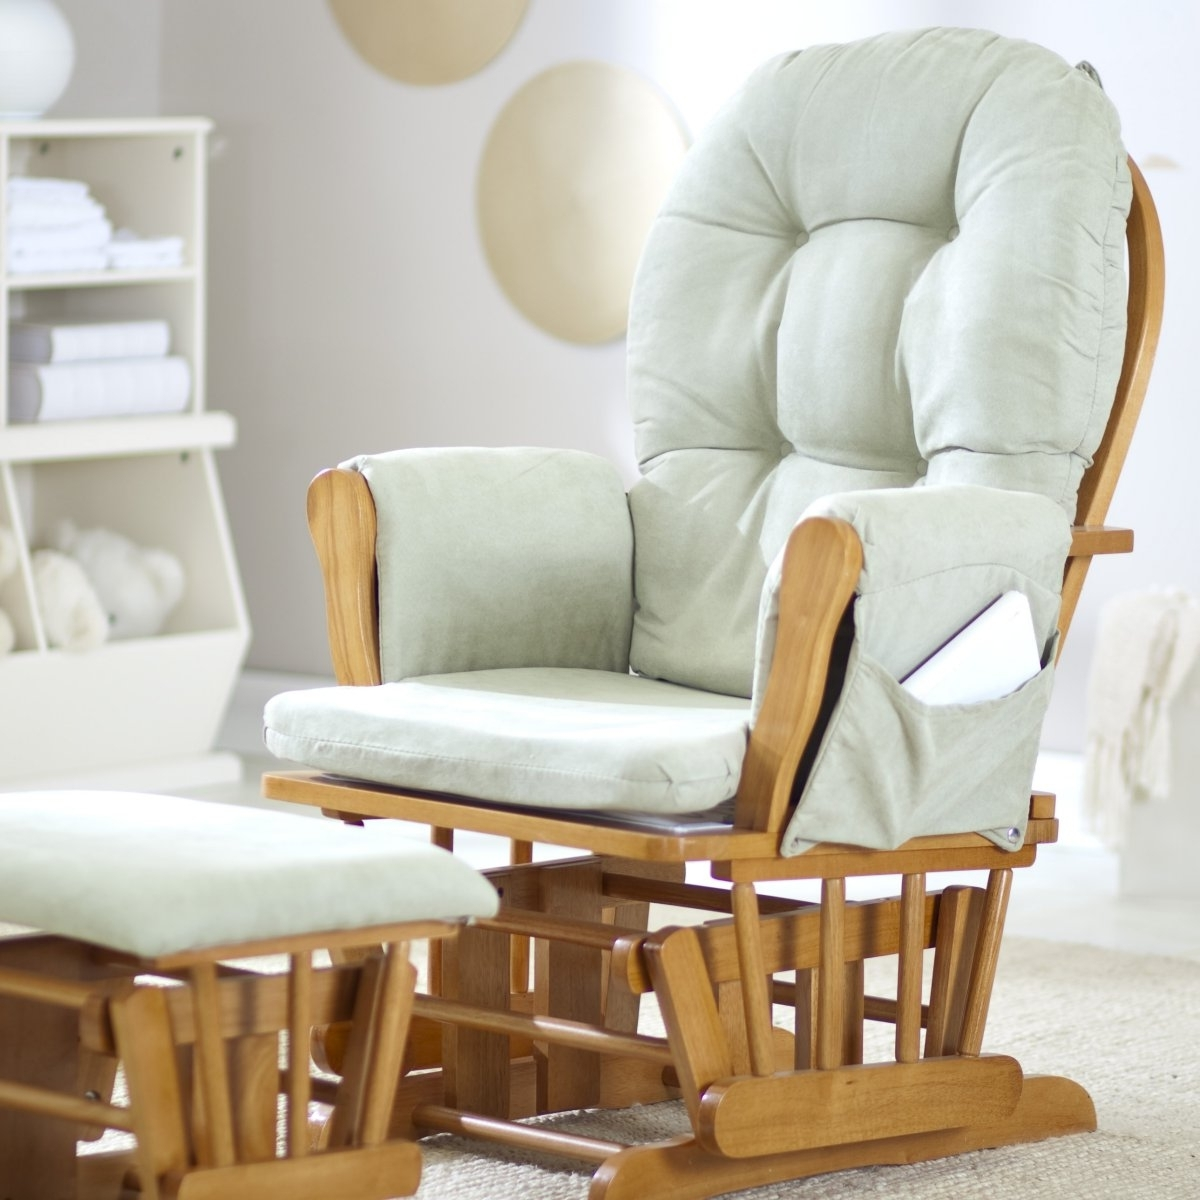 Rocking Chairs For Nursery For Latest Nursery Rocking Chair Target – Nursery Rocking Chair For Mom And (View 11 of 20)